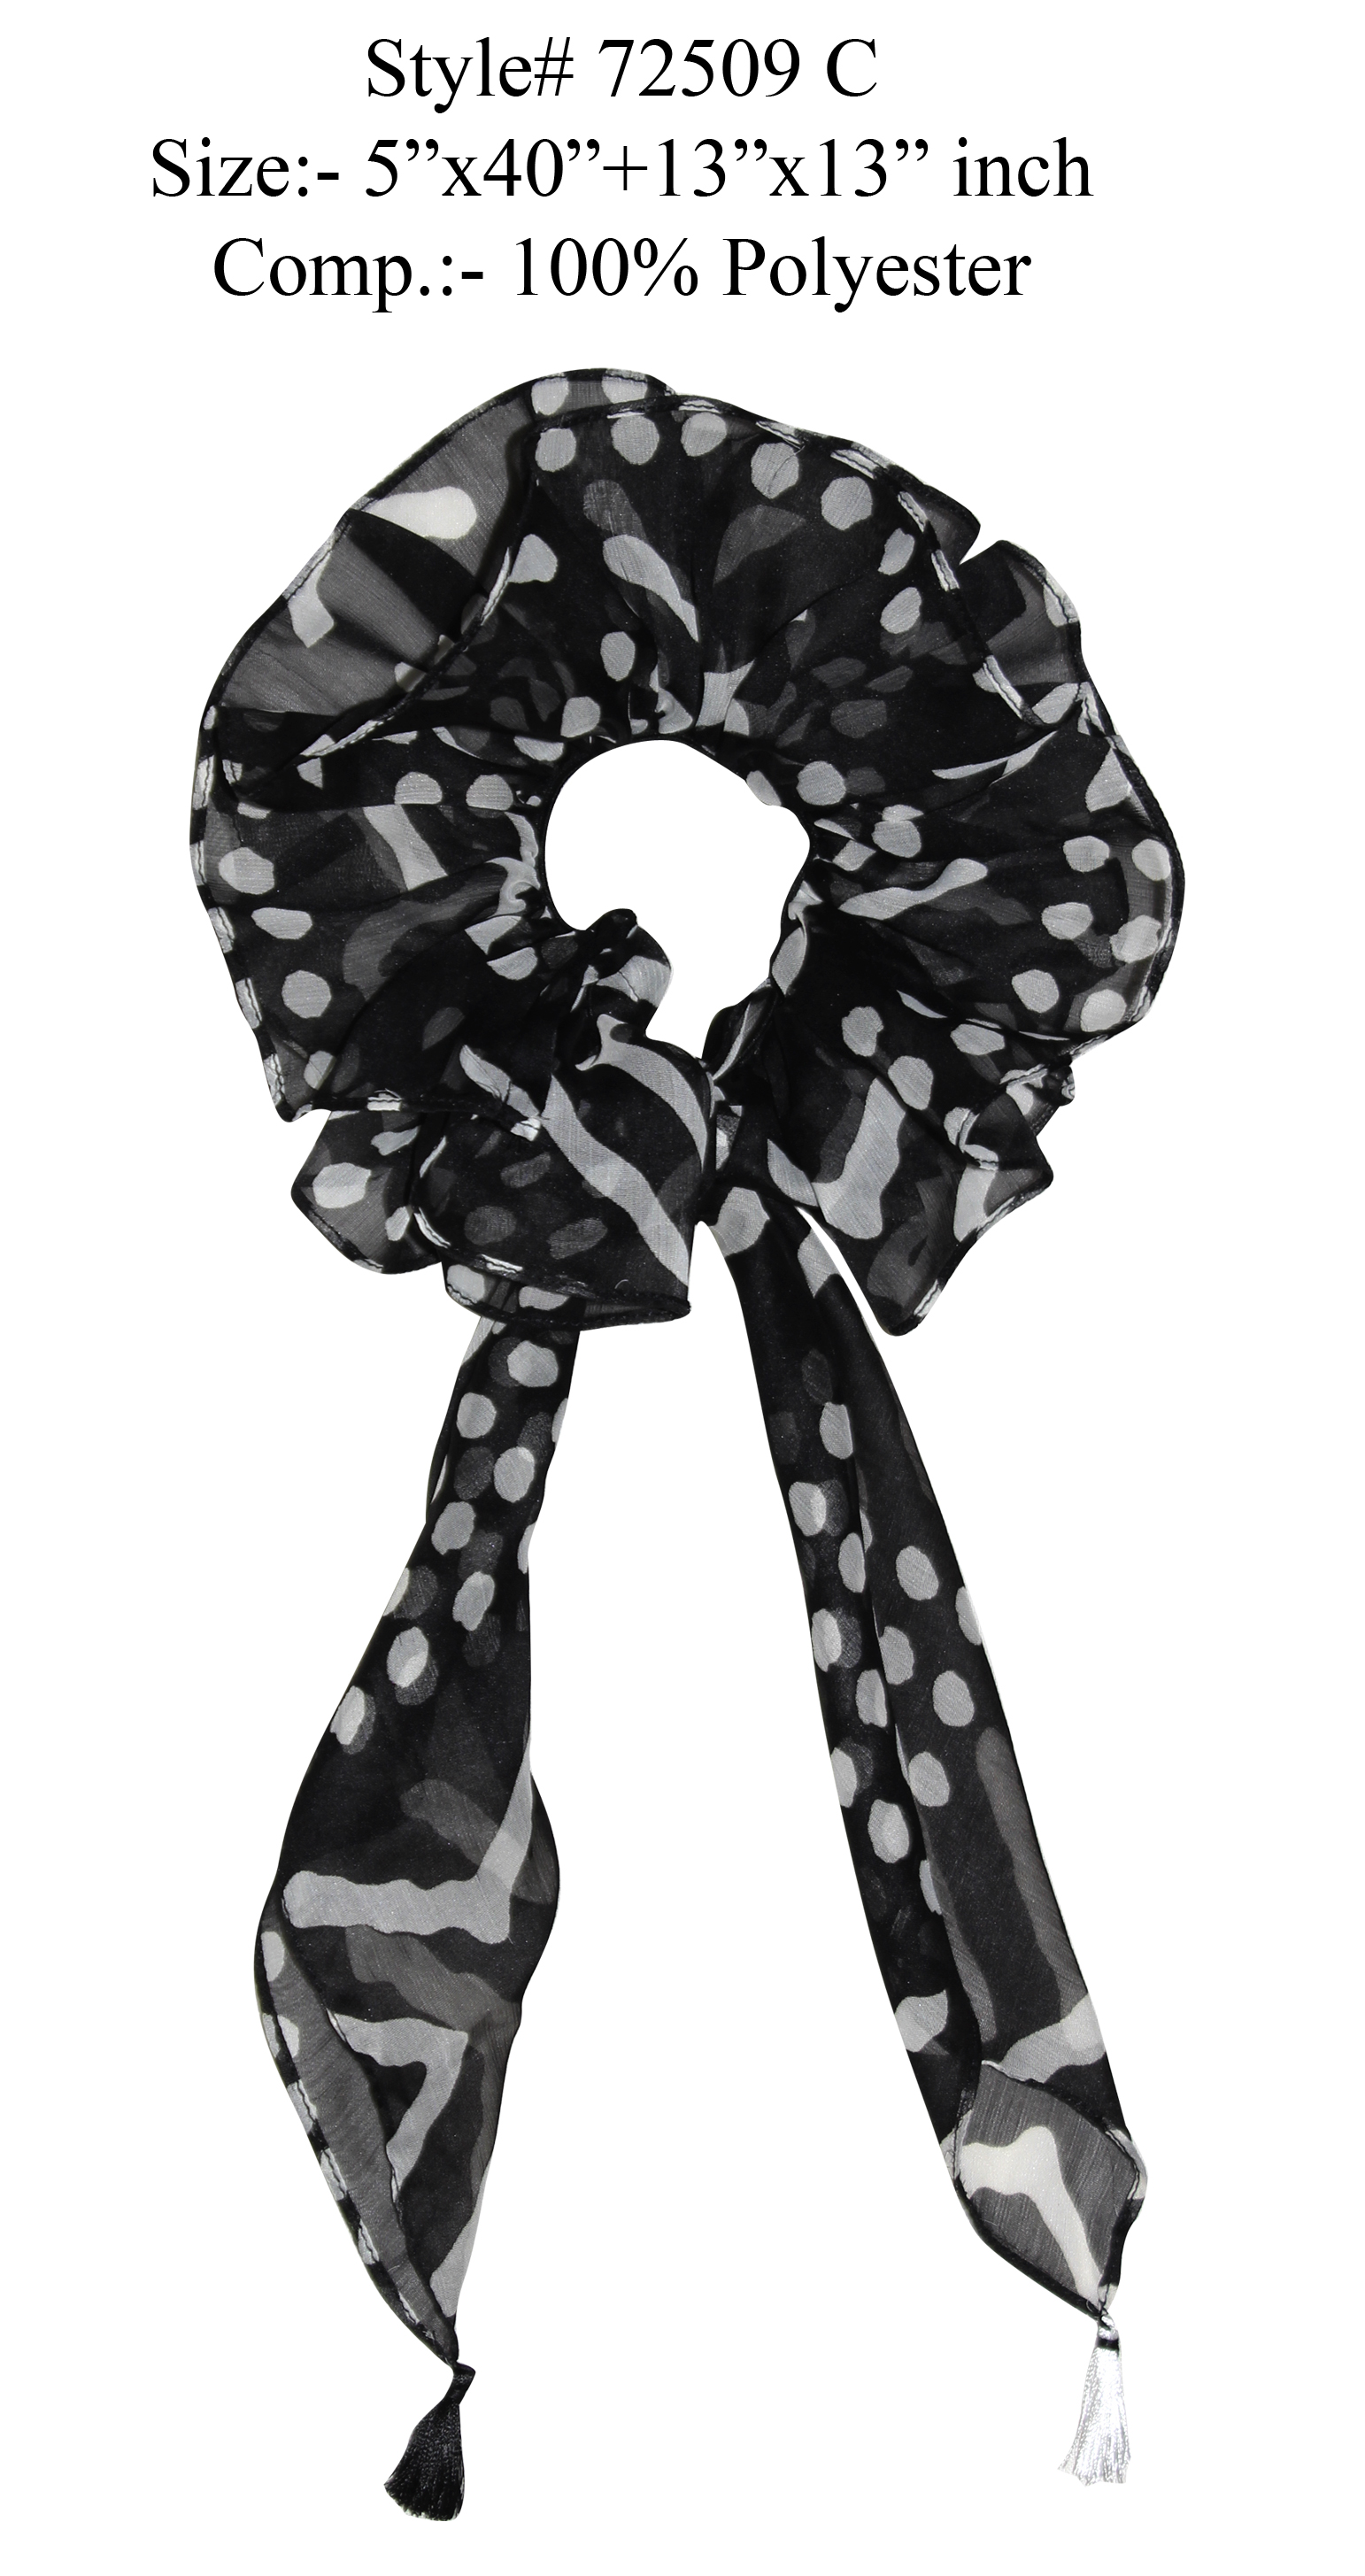 BLACK/WHITE COLORED HAIR BAND, RUFFLE